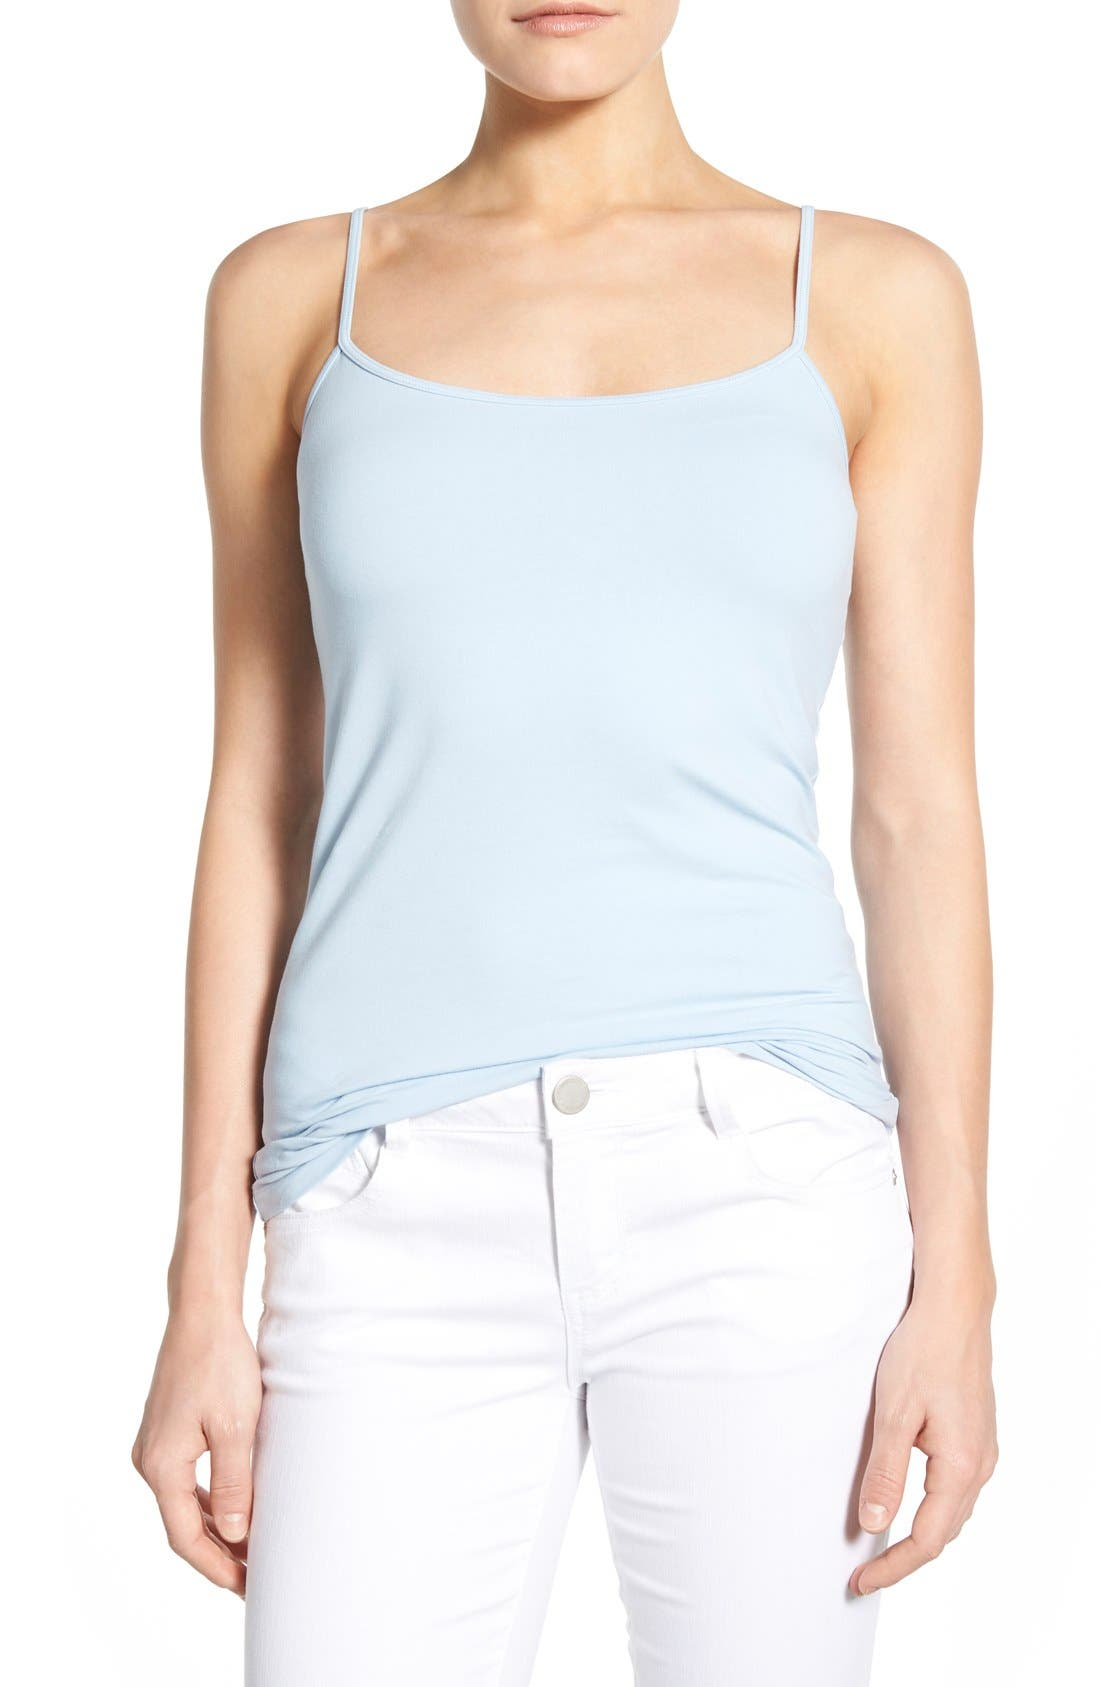 'Absolute' Camisole,                             Main thumbnail 1, color,                             Blue Cashmere